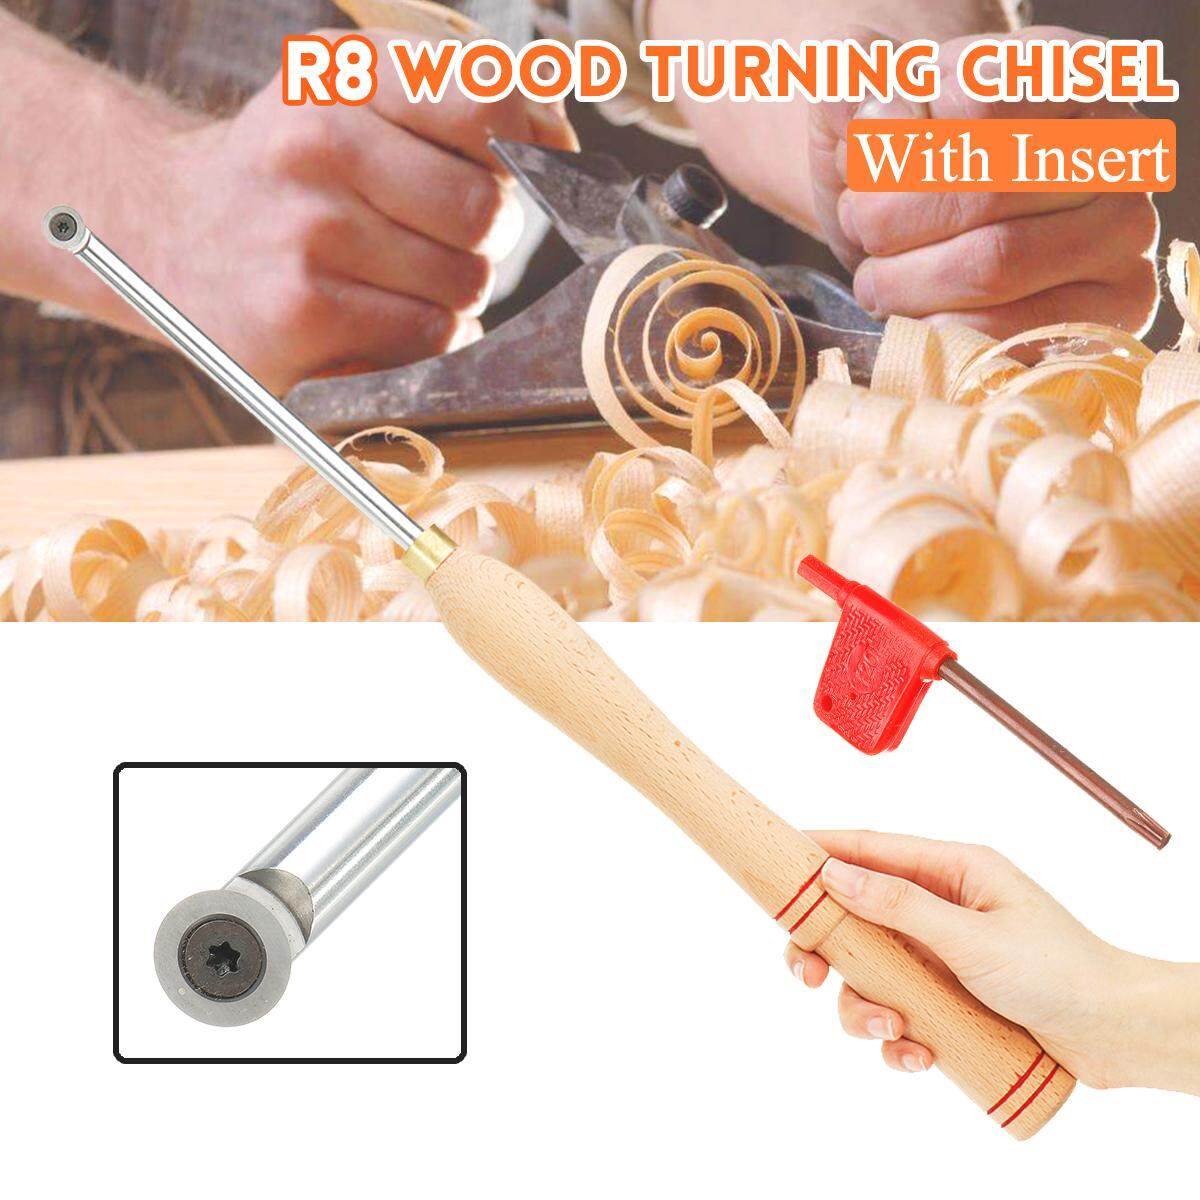 【Free Shipping + Super Deal + Limited Offer】R8 Wood Turning Chisel Tool with Carbide Insert Wooden Handle Hand-held + Wrench